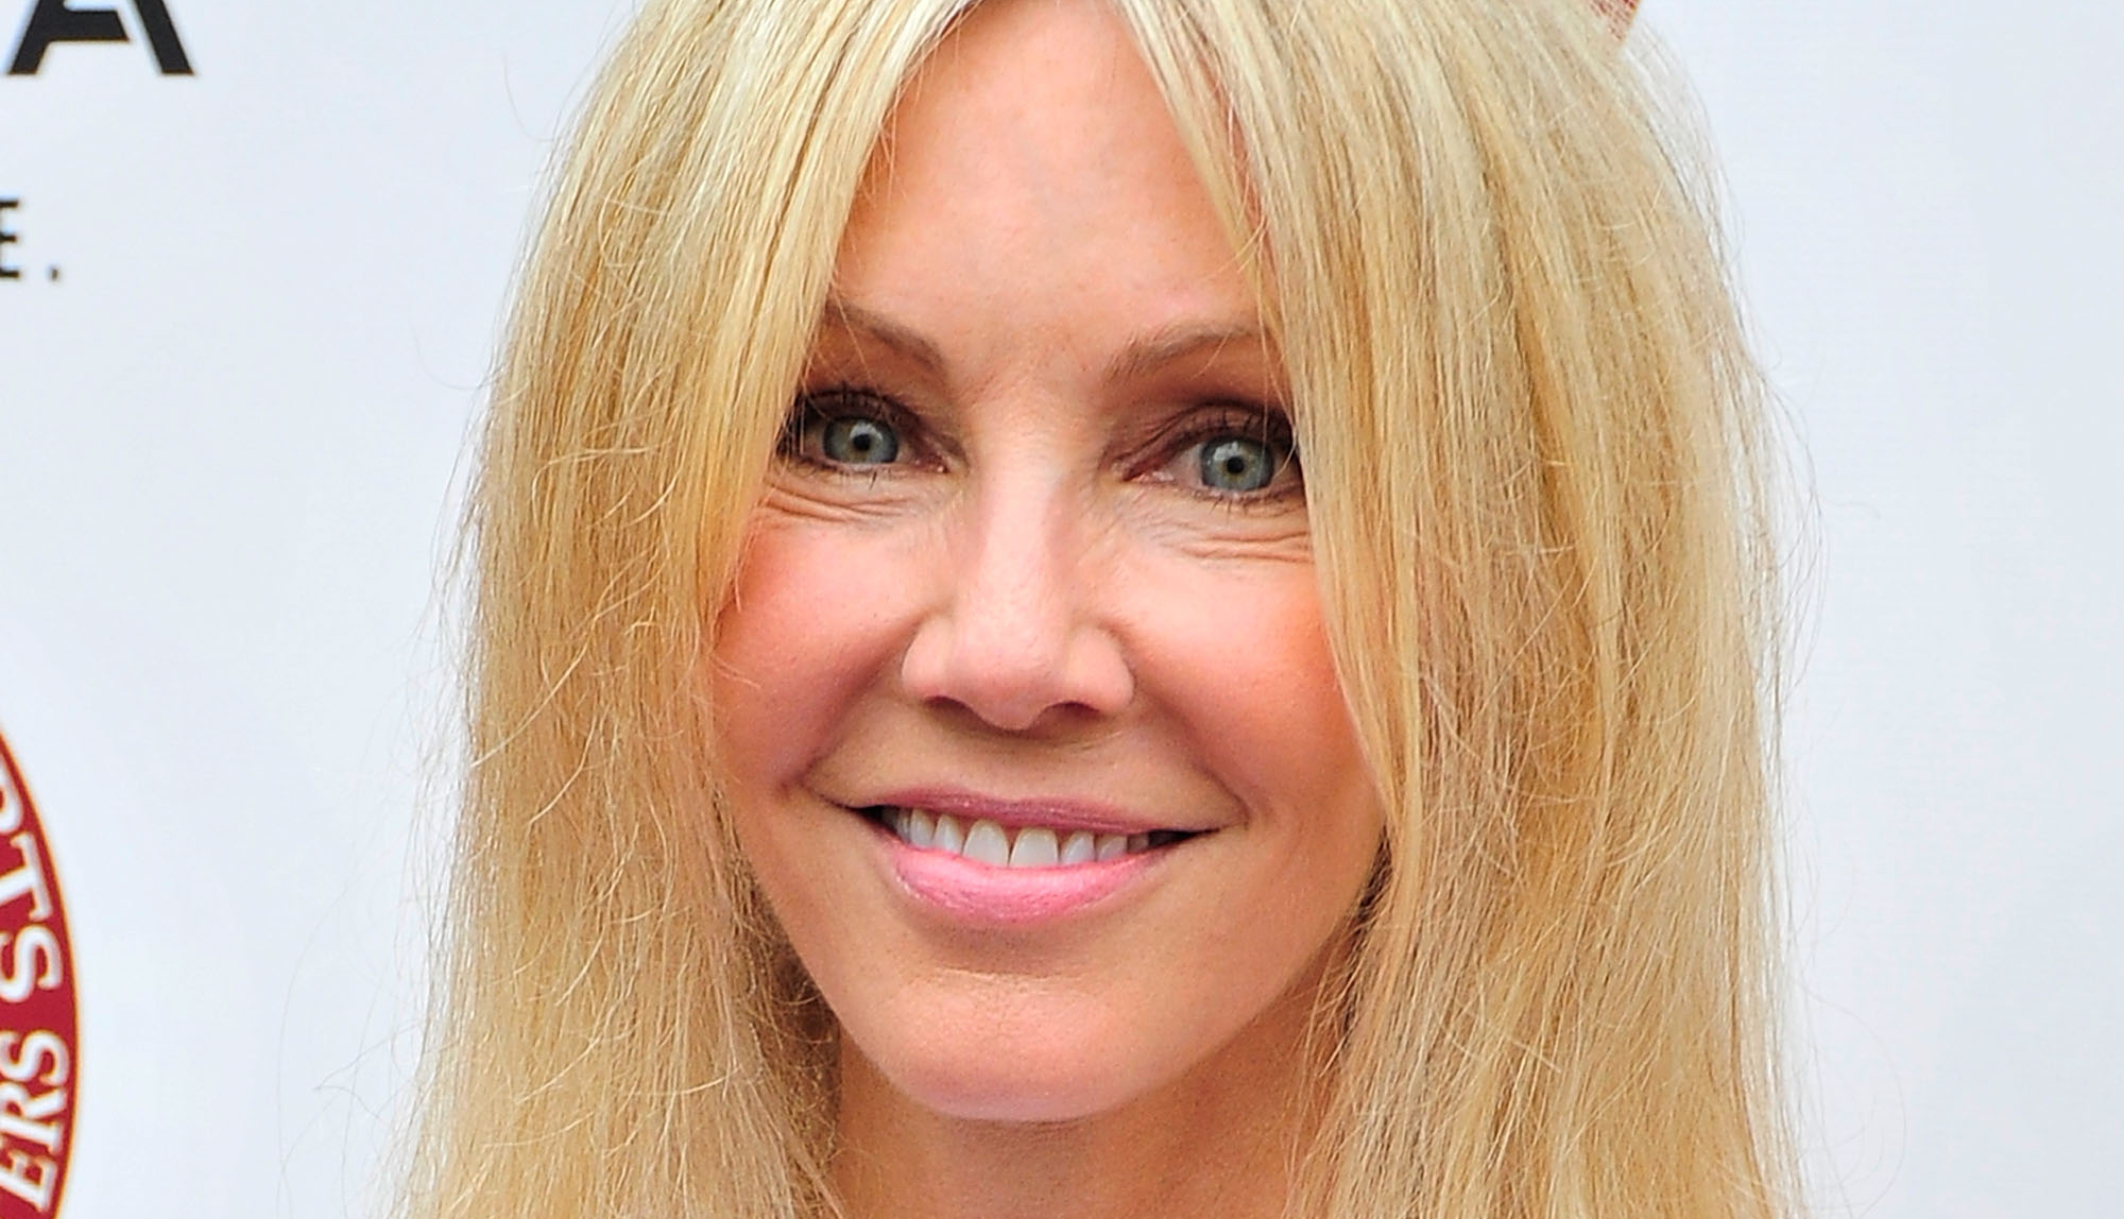 Heather Locklear Reportedly Checks Into Rehab, Is 'Tearing Up Her Family'